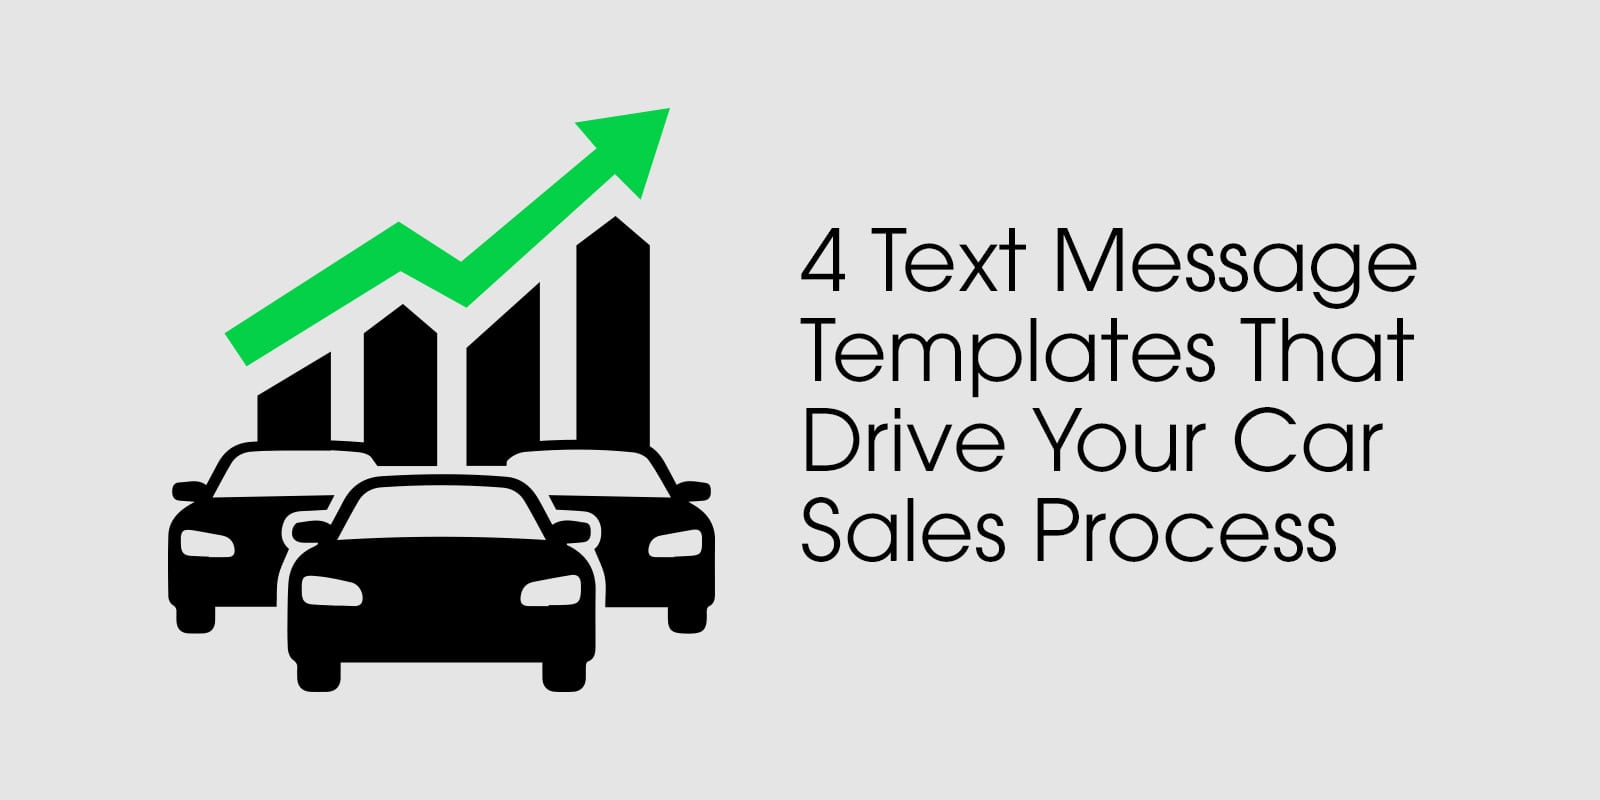 4 Text Message Templates That Drive Your Car Sales Process